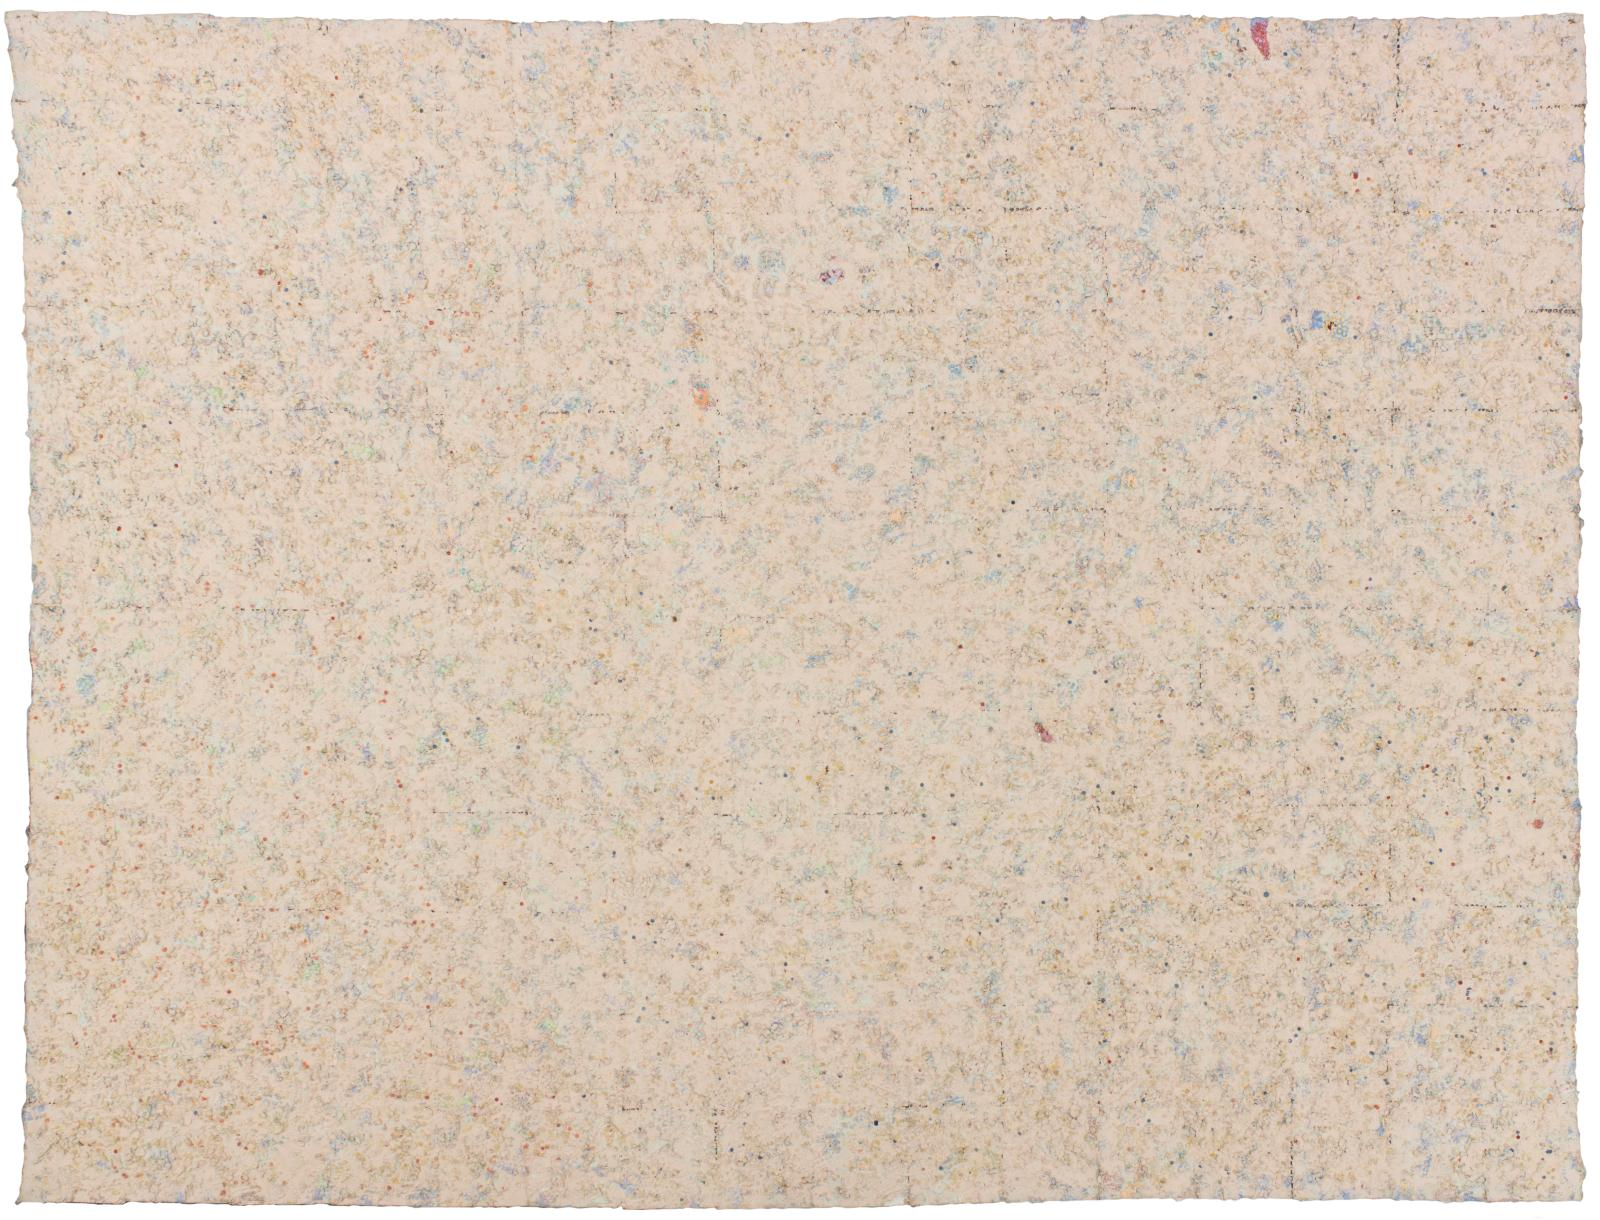 A primarily beige-looking canvas is actually composed of many small dots of light blues, pinks, oranges, and purples.